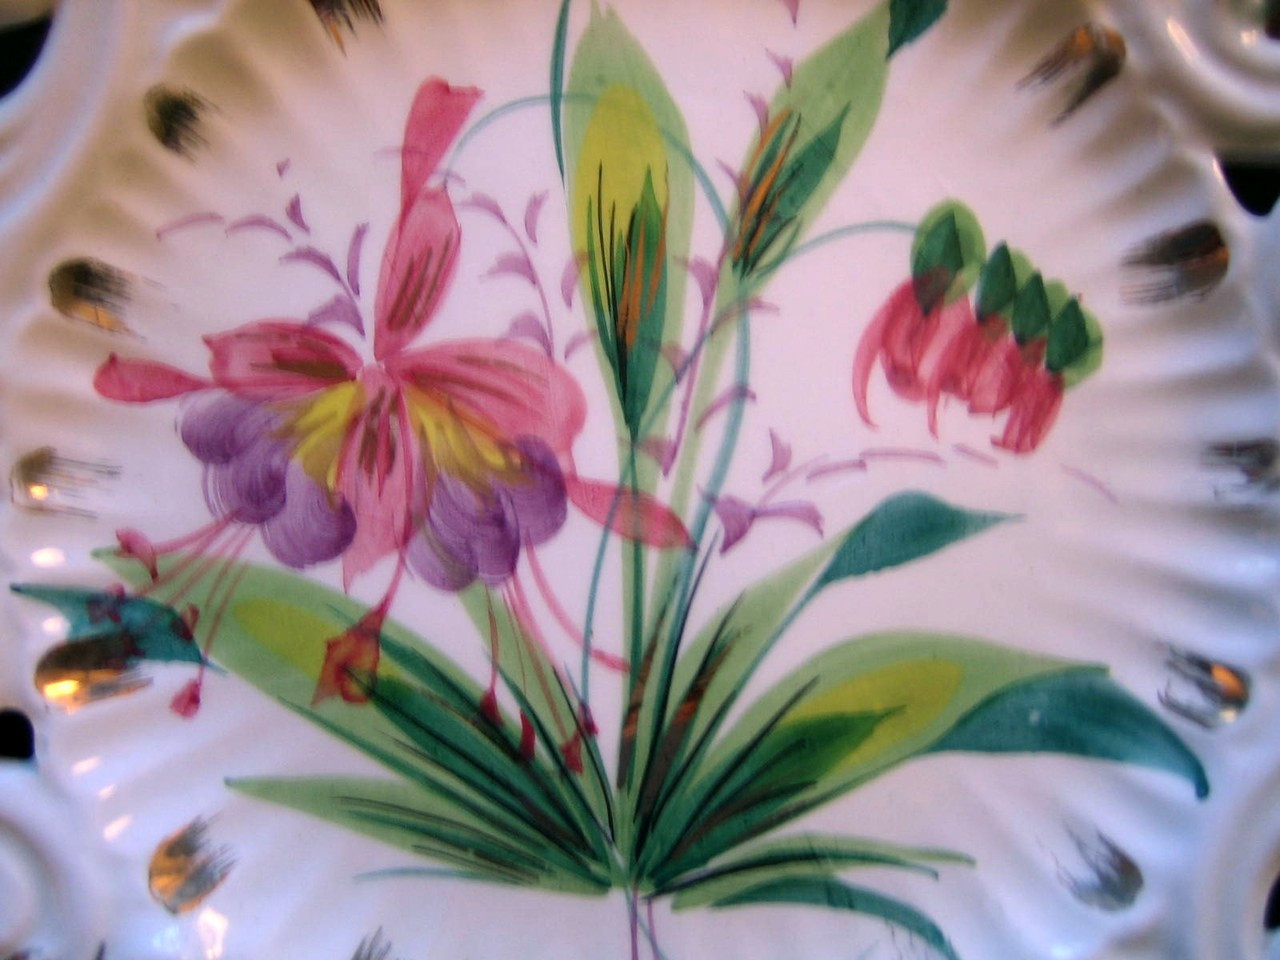 Vintage Decorative Plate - Aqua Pierced Purple Flower Gold Leaf Handpainted in Italy Center www.DecorativeDishes.net